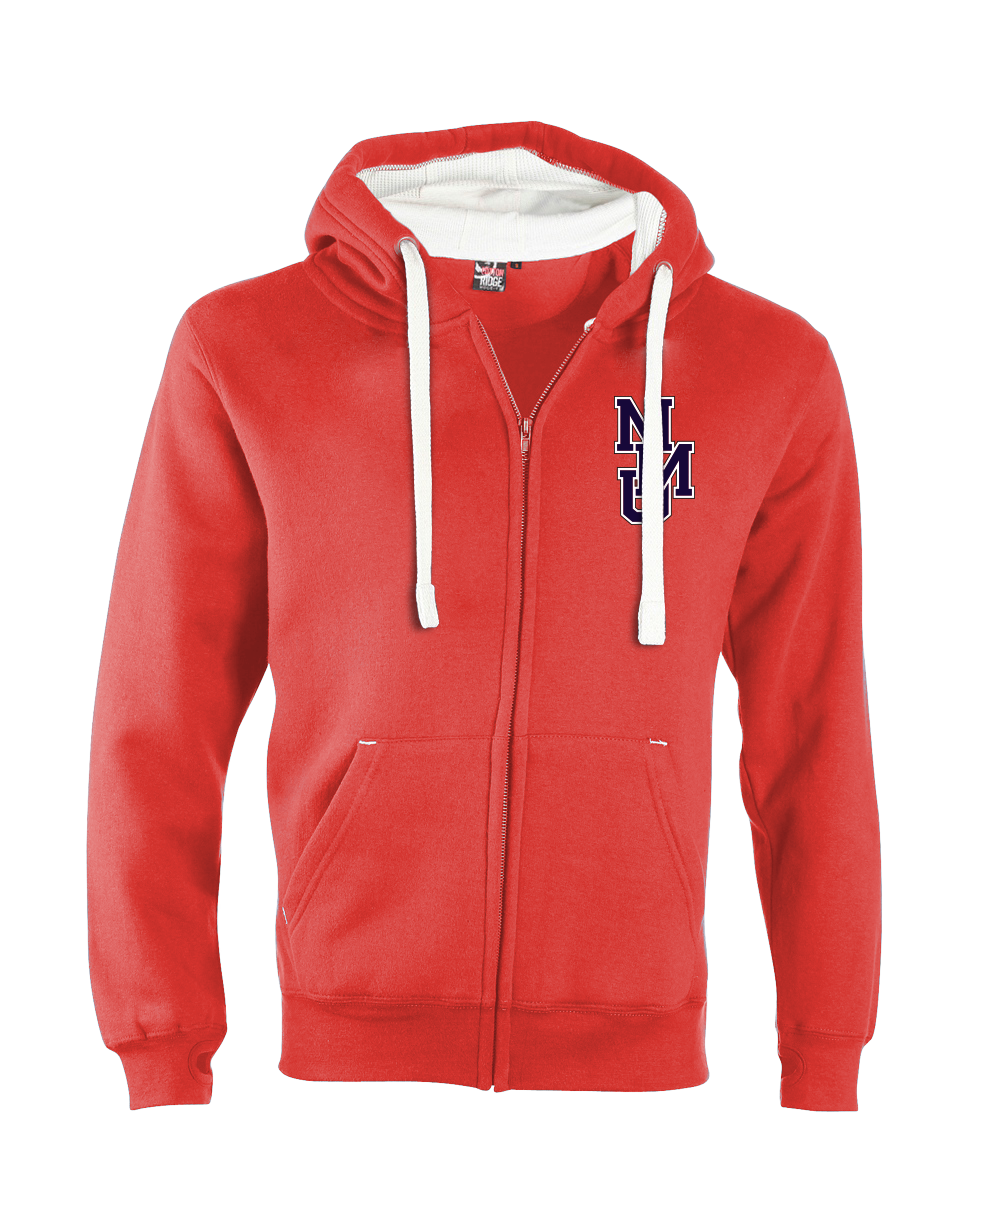 W81PF-2011-Manchester Metropolitan University Ultra Soft Feel Hooded Top